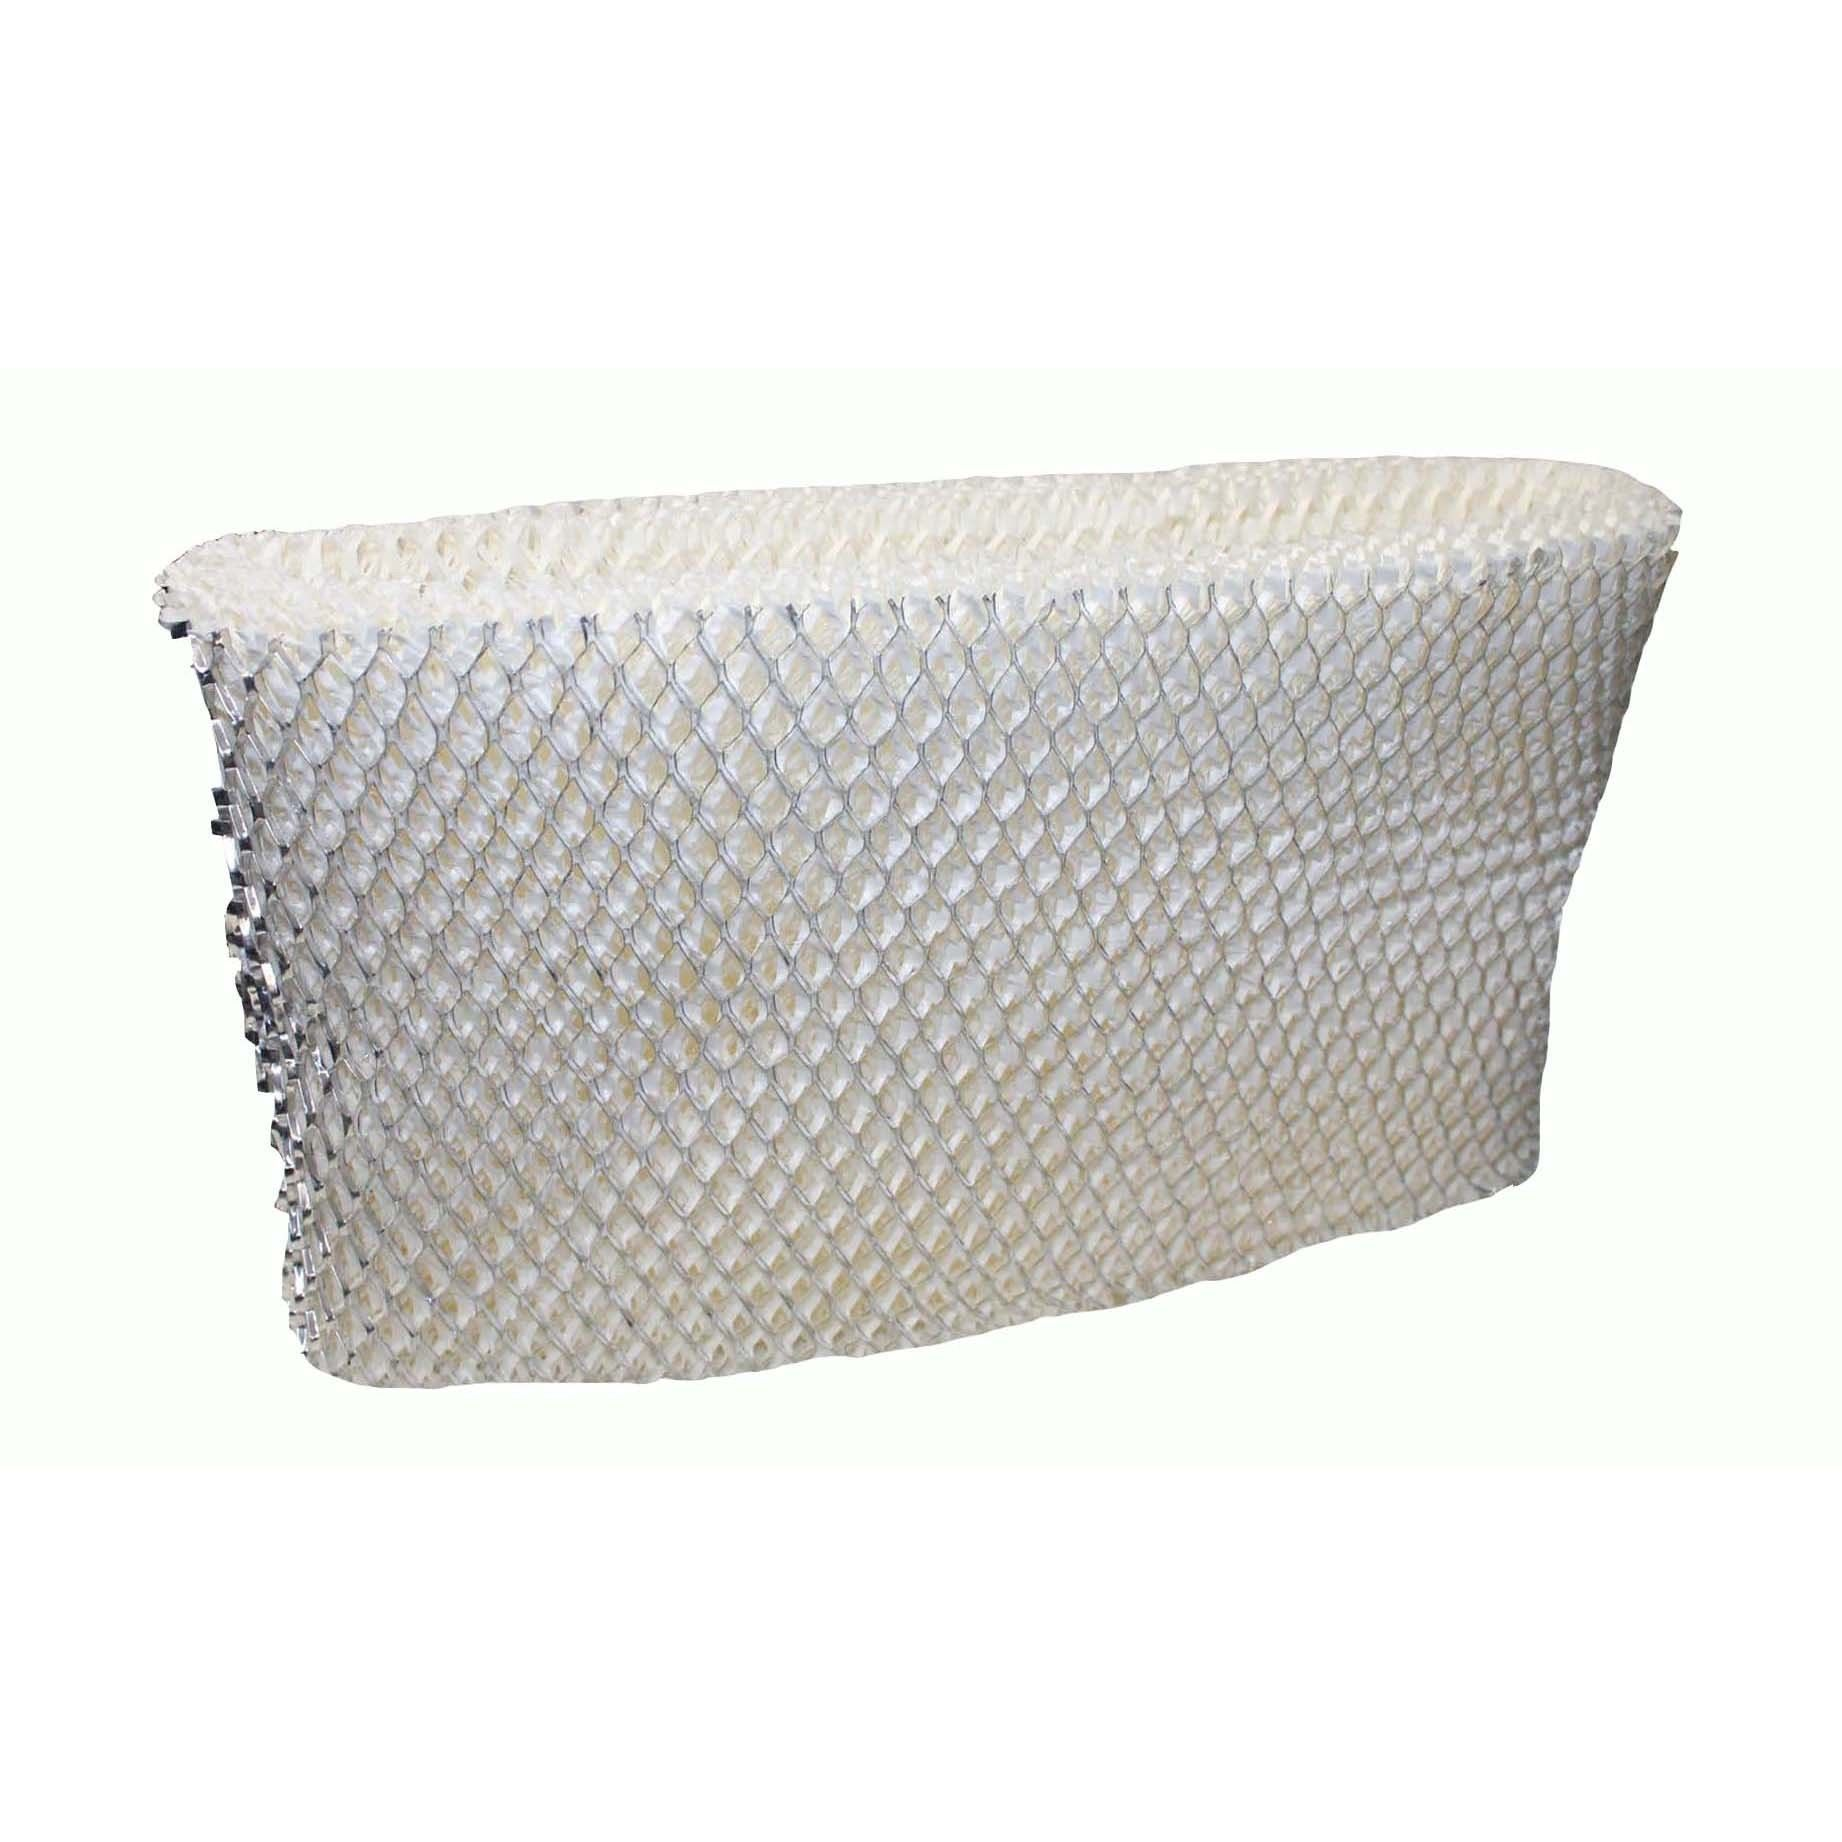 Replacement Humidifier Filter, Fits Honeywell QuietCare